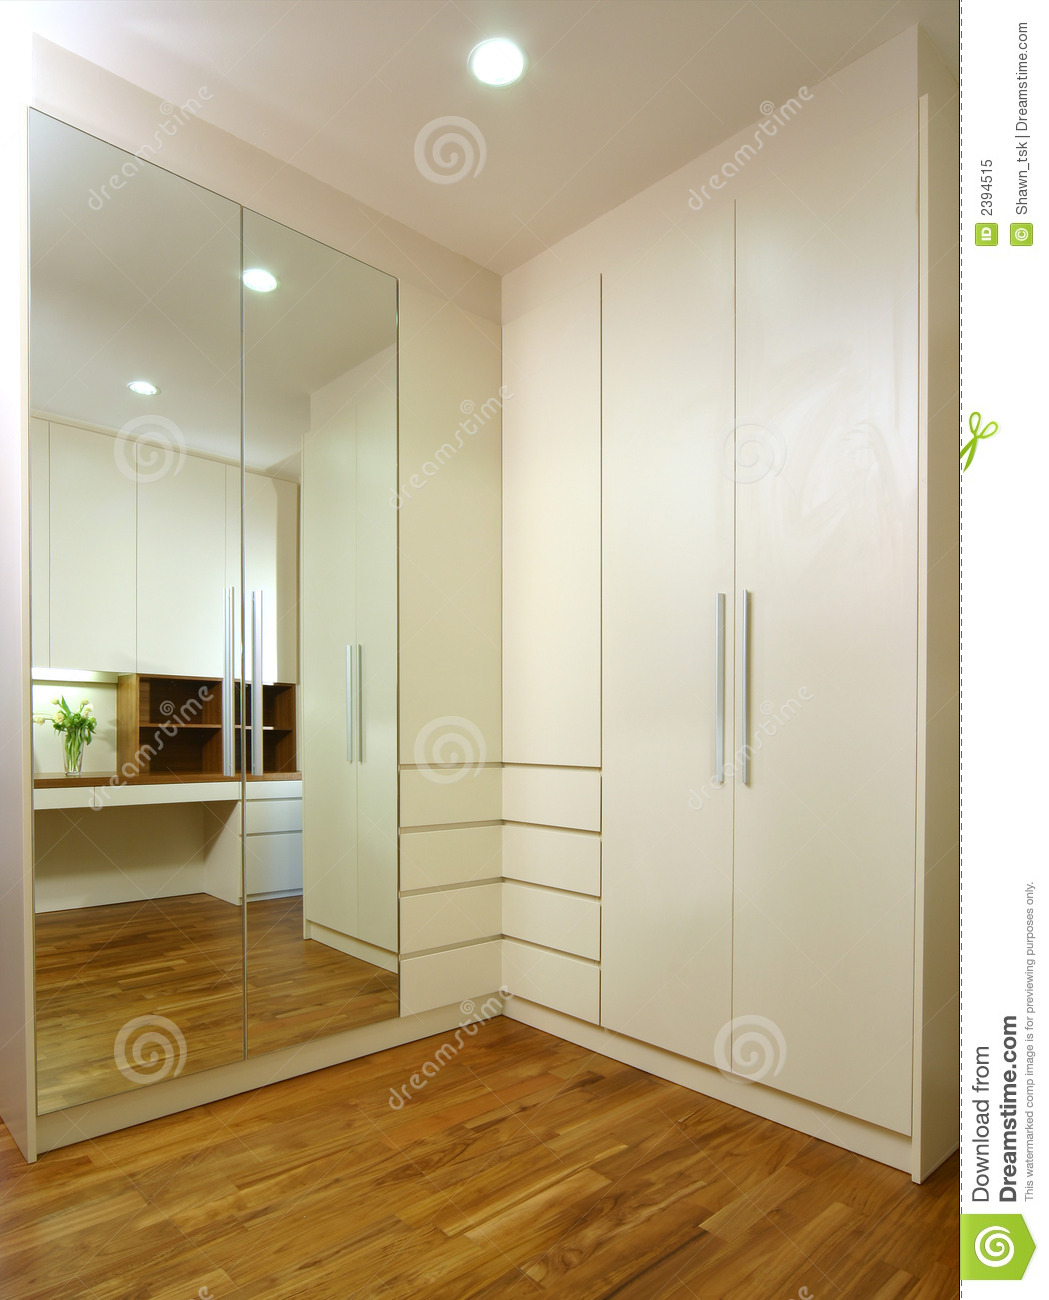 Interior Design Wardrobe Royalty Free Stock Photo